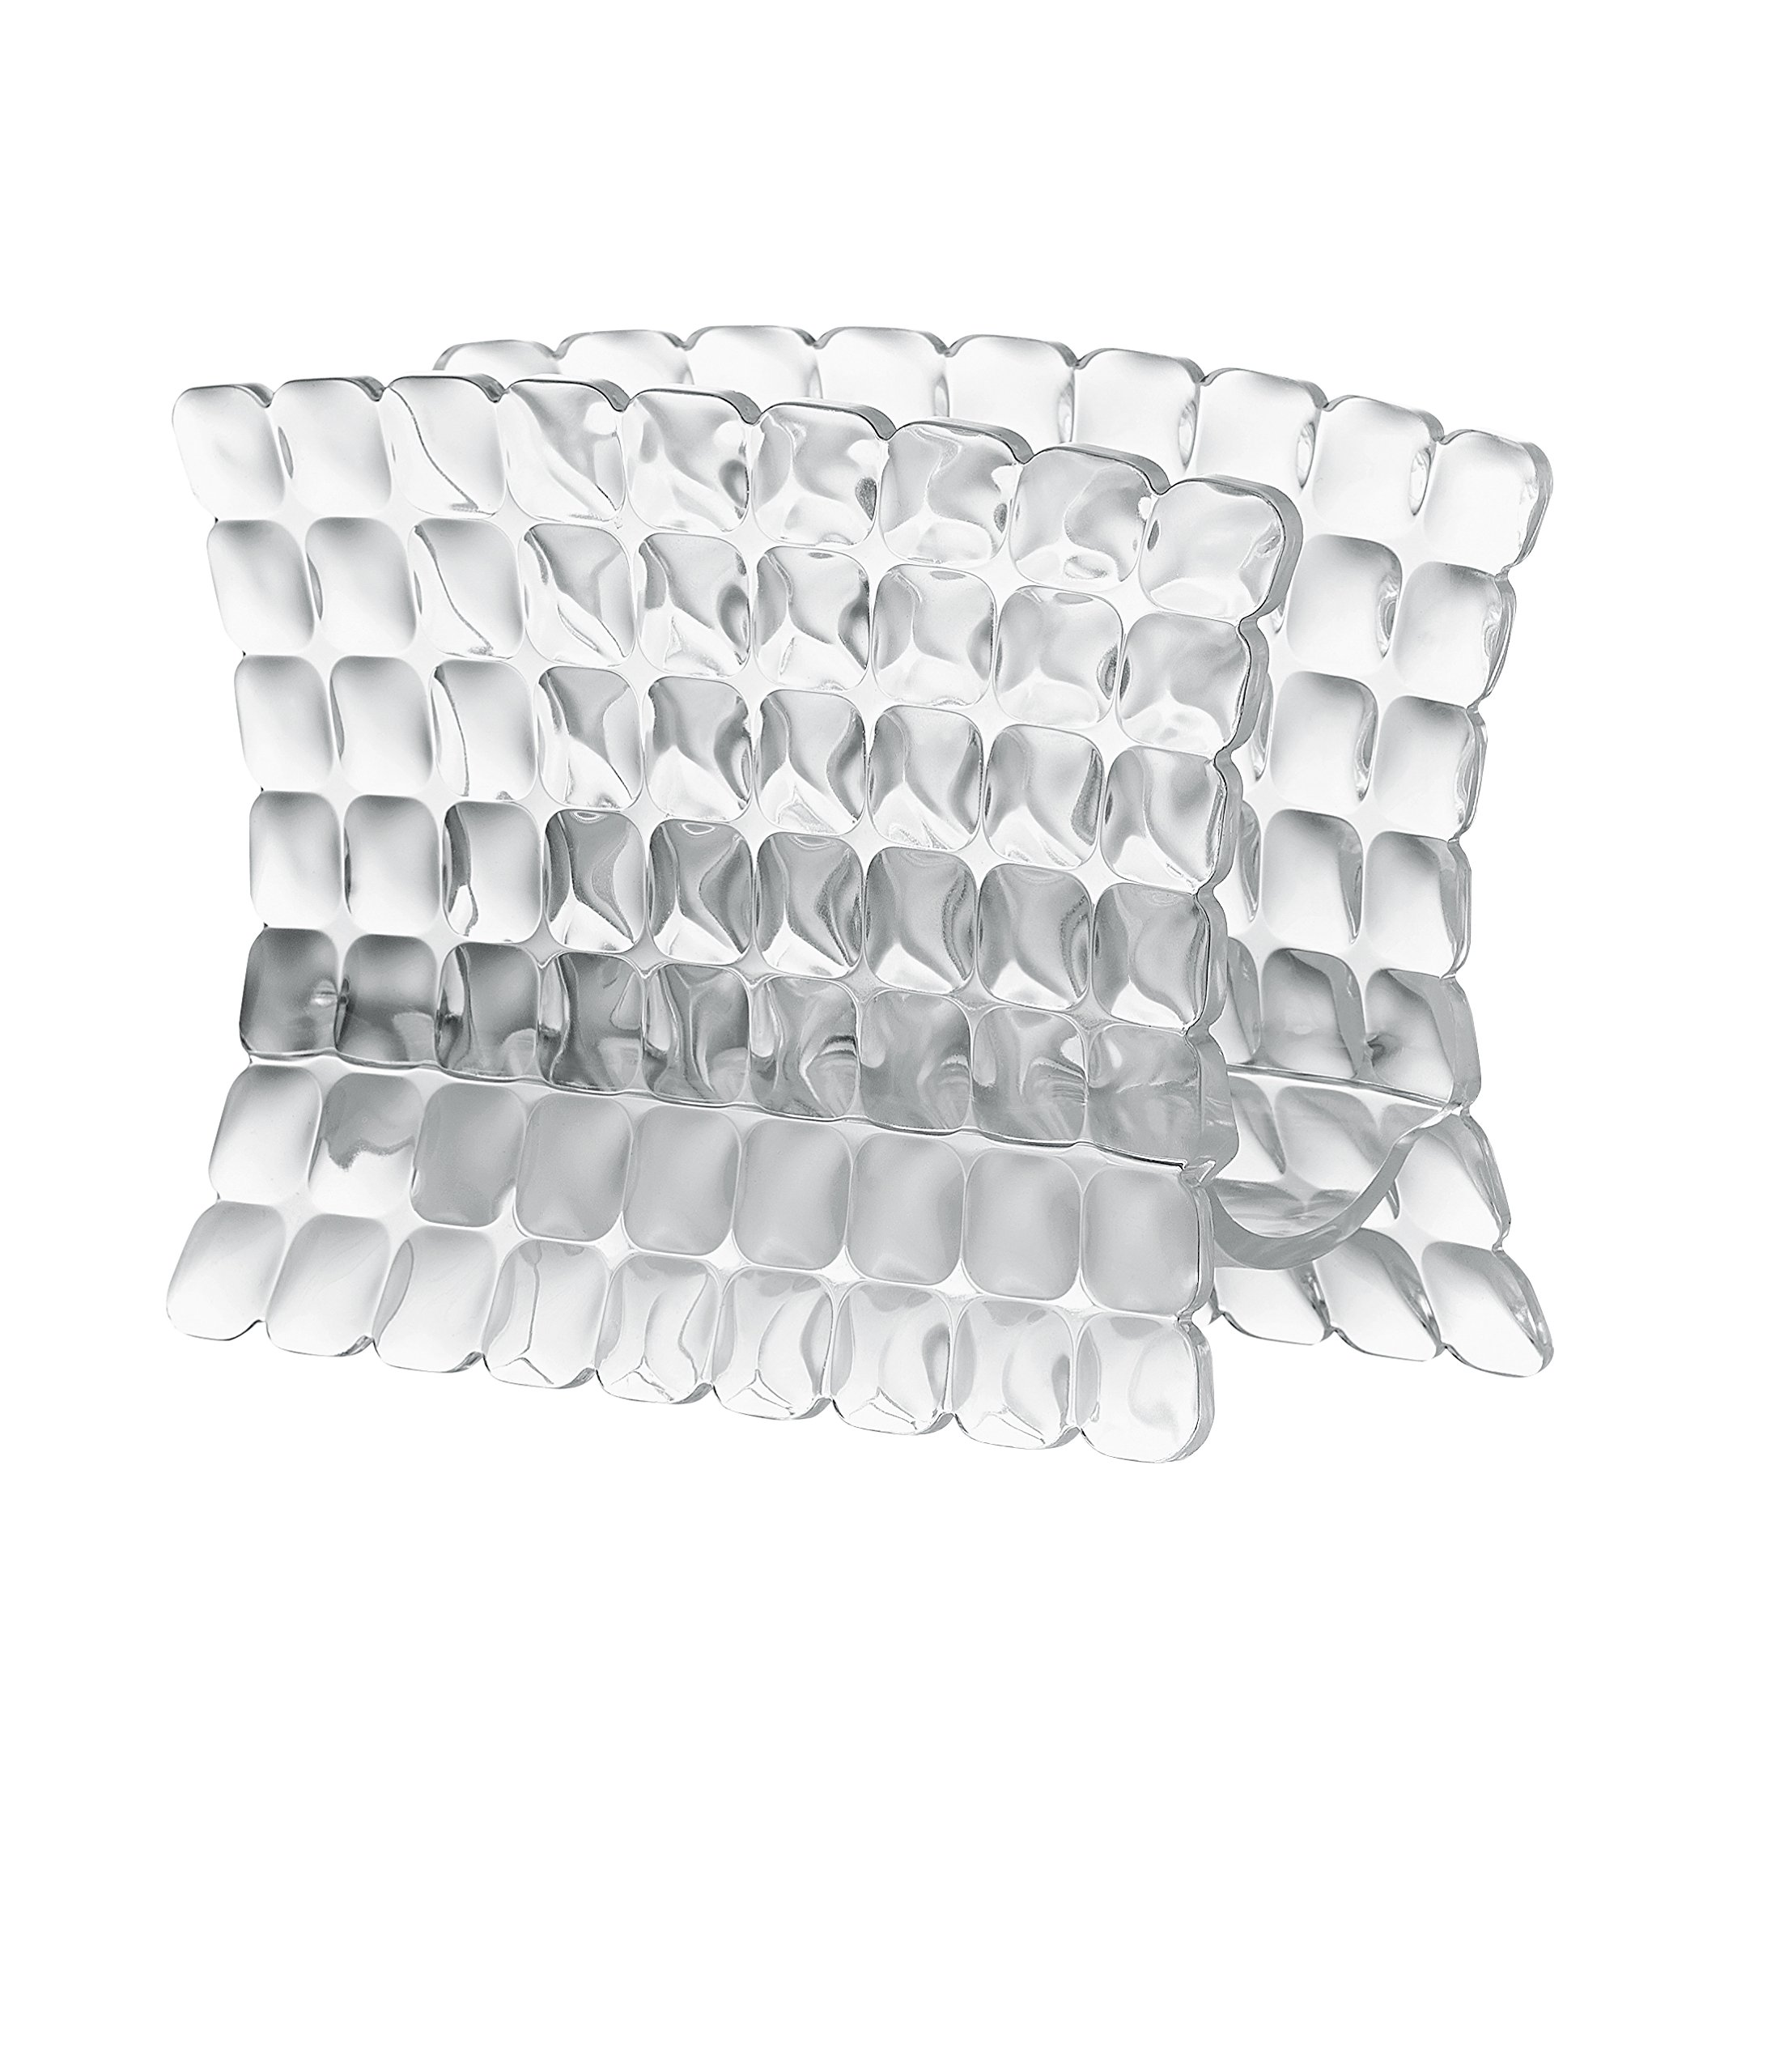 Guzzini Tiffany Collection Table Napkin Holder, Durable BPA-Free Acrylic Looks Like Crystal, 6'' x 3'' x 4-1/4'', Transparent